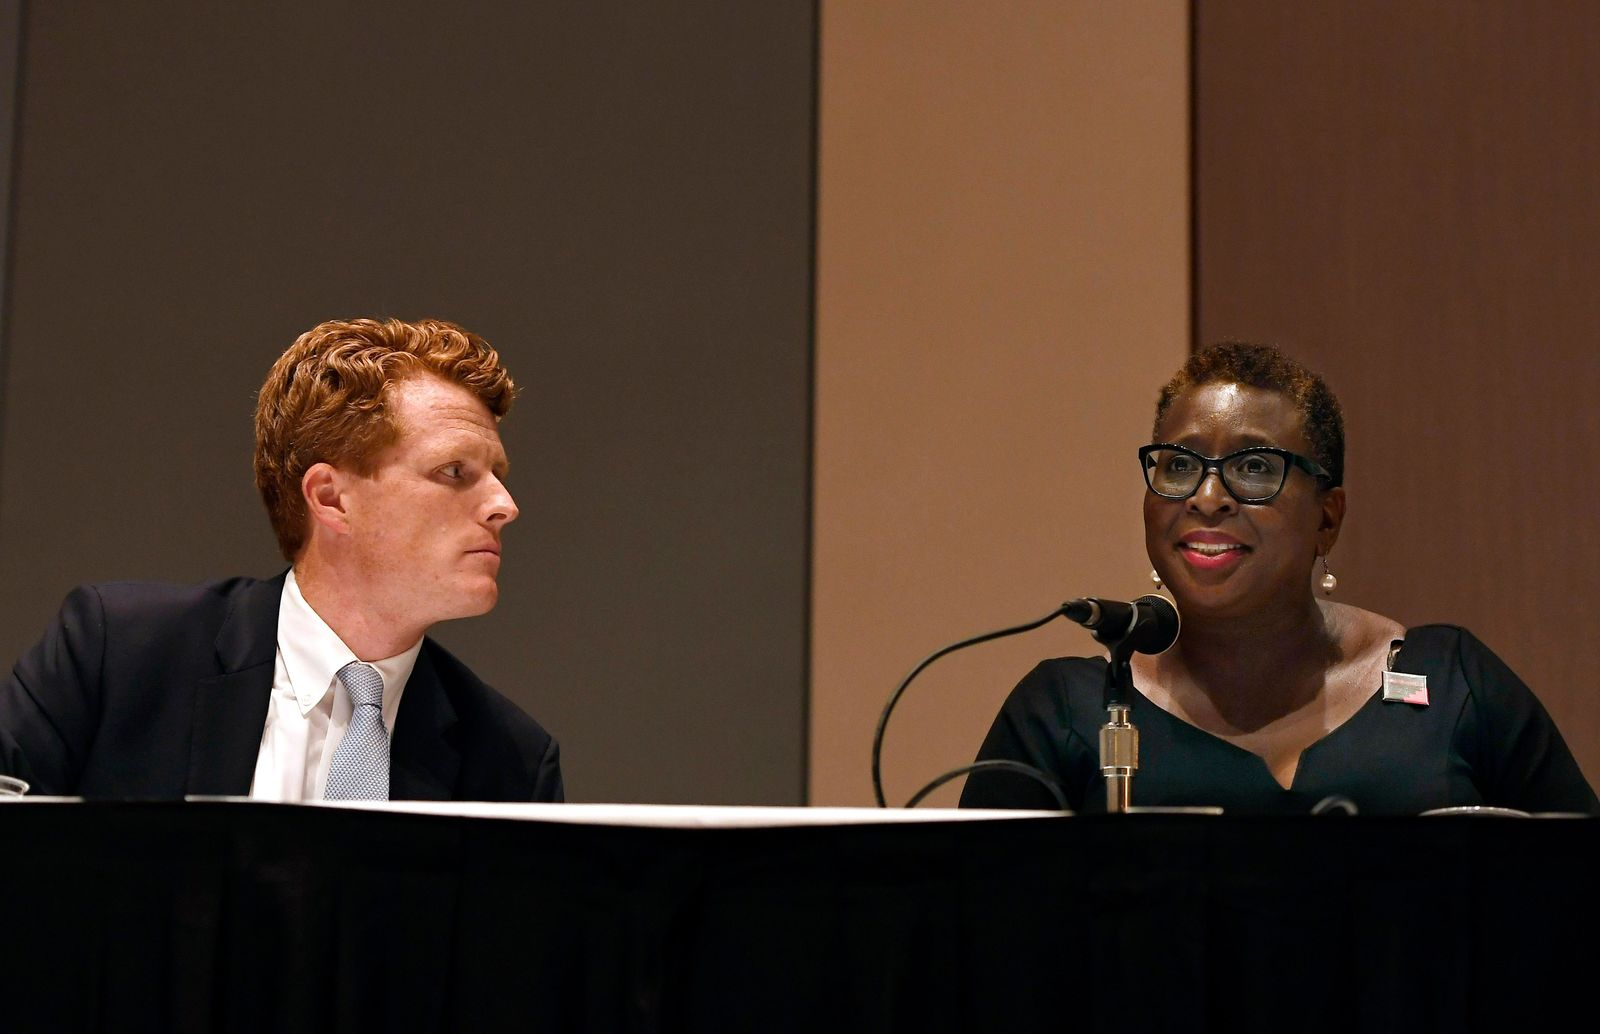 U.S. Rep. Joe Kennedy III, left, listens as Framingham Mayor Yvonne Spicer, right, speaks on a panel on race and politics, Saturday, Sept. 14, 2019, in Springfield, Mass. (AP Photo/Jessica Hill)